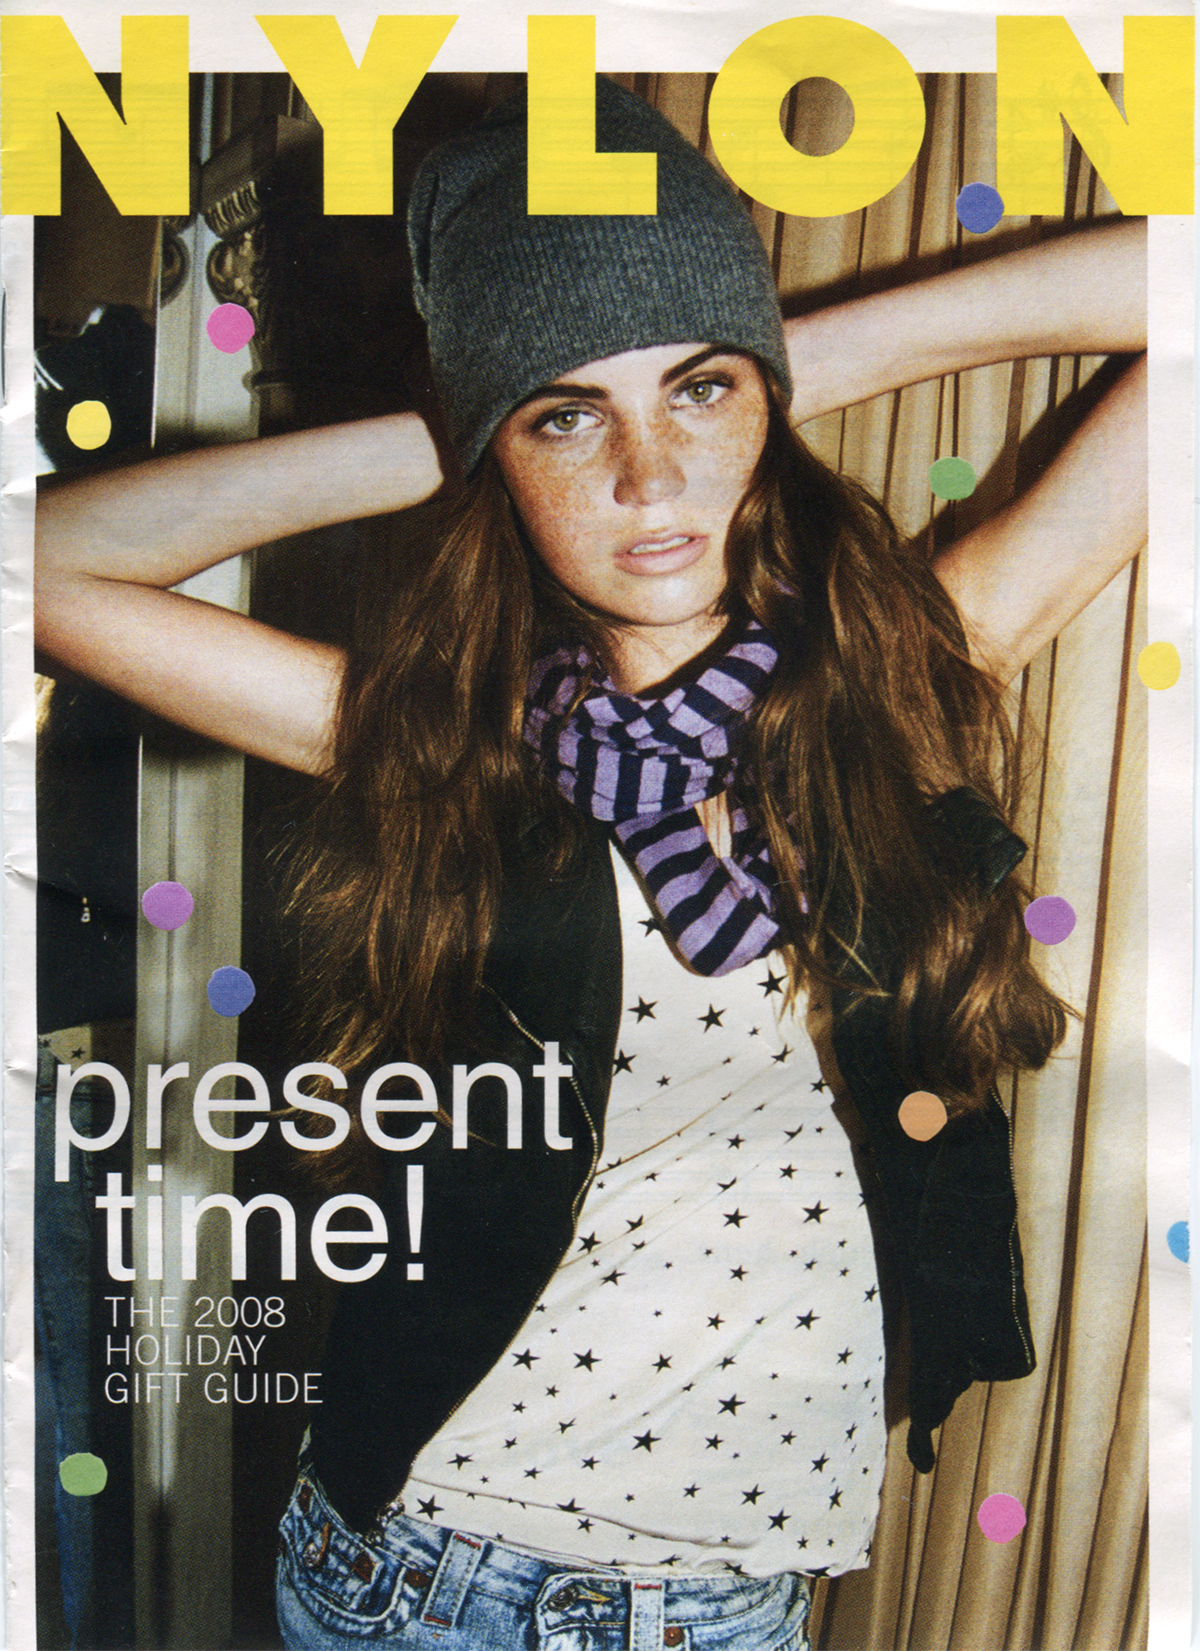 Nylon Magazine gift guide for 2009.